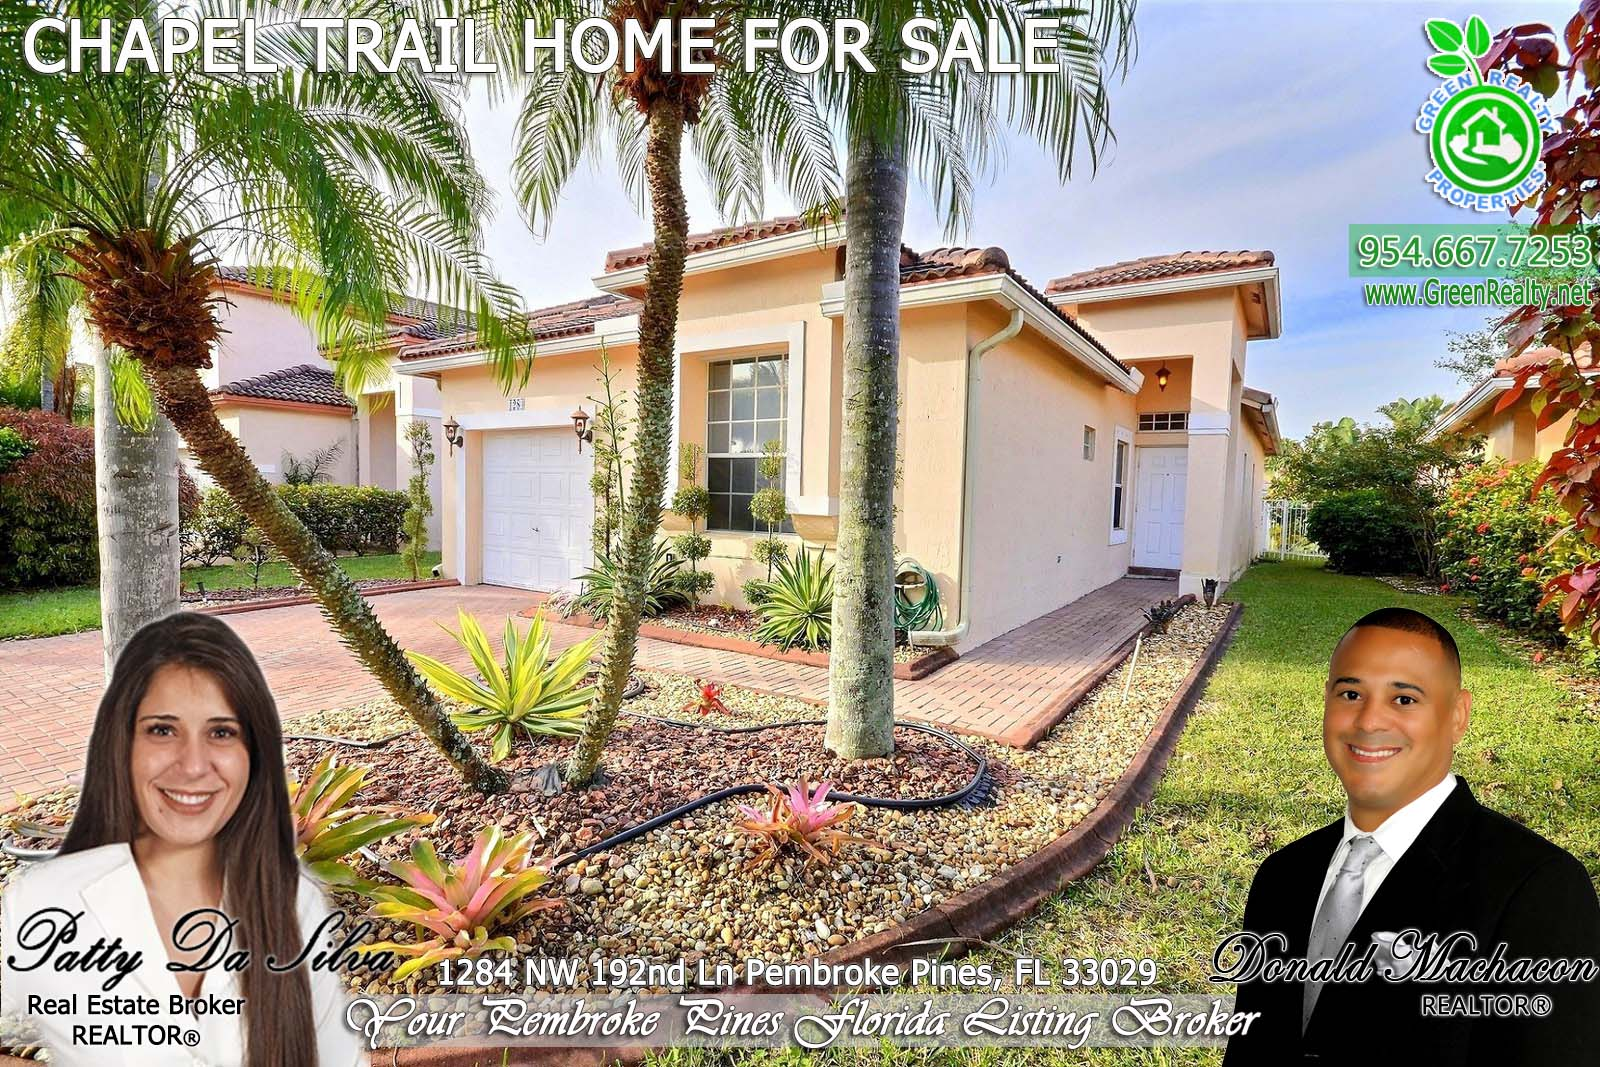 2 Homes For Sale in Pembroke Pines (4)